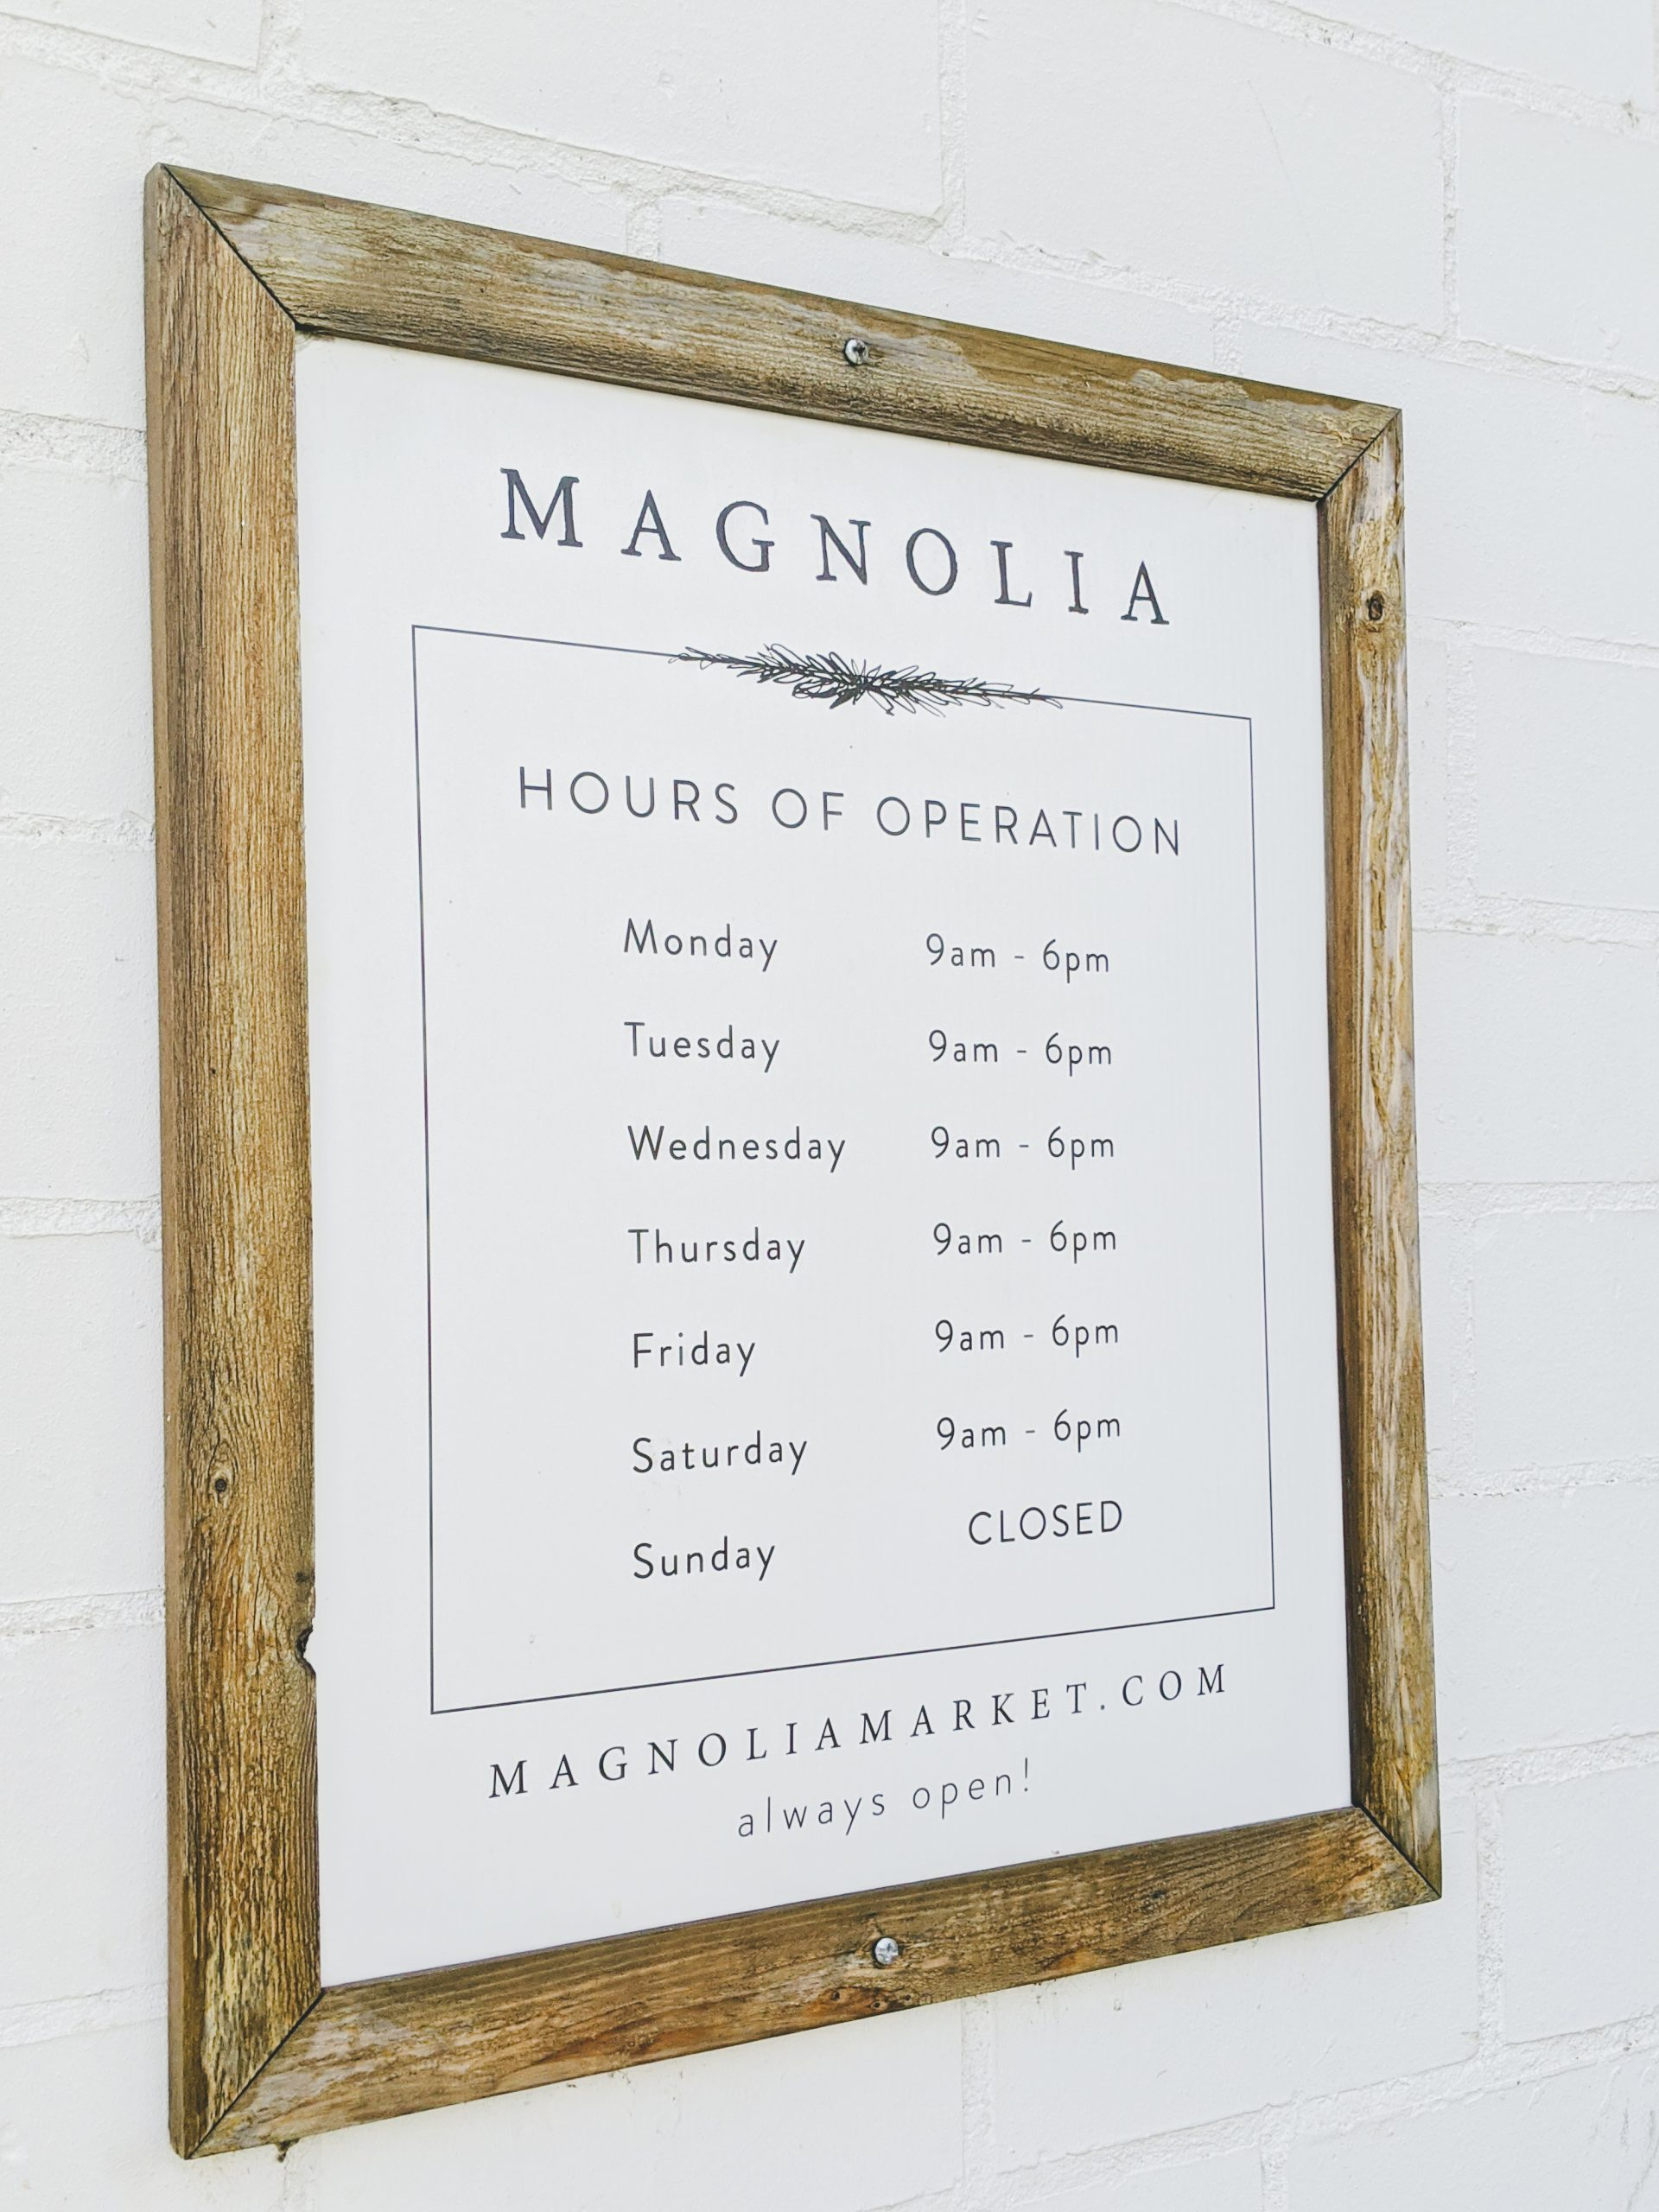 magnolia silos hours of operation sign